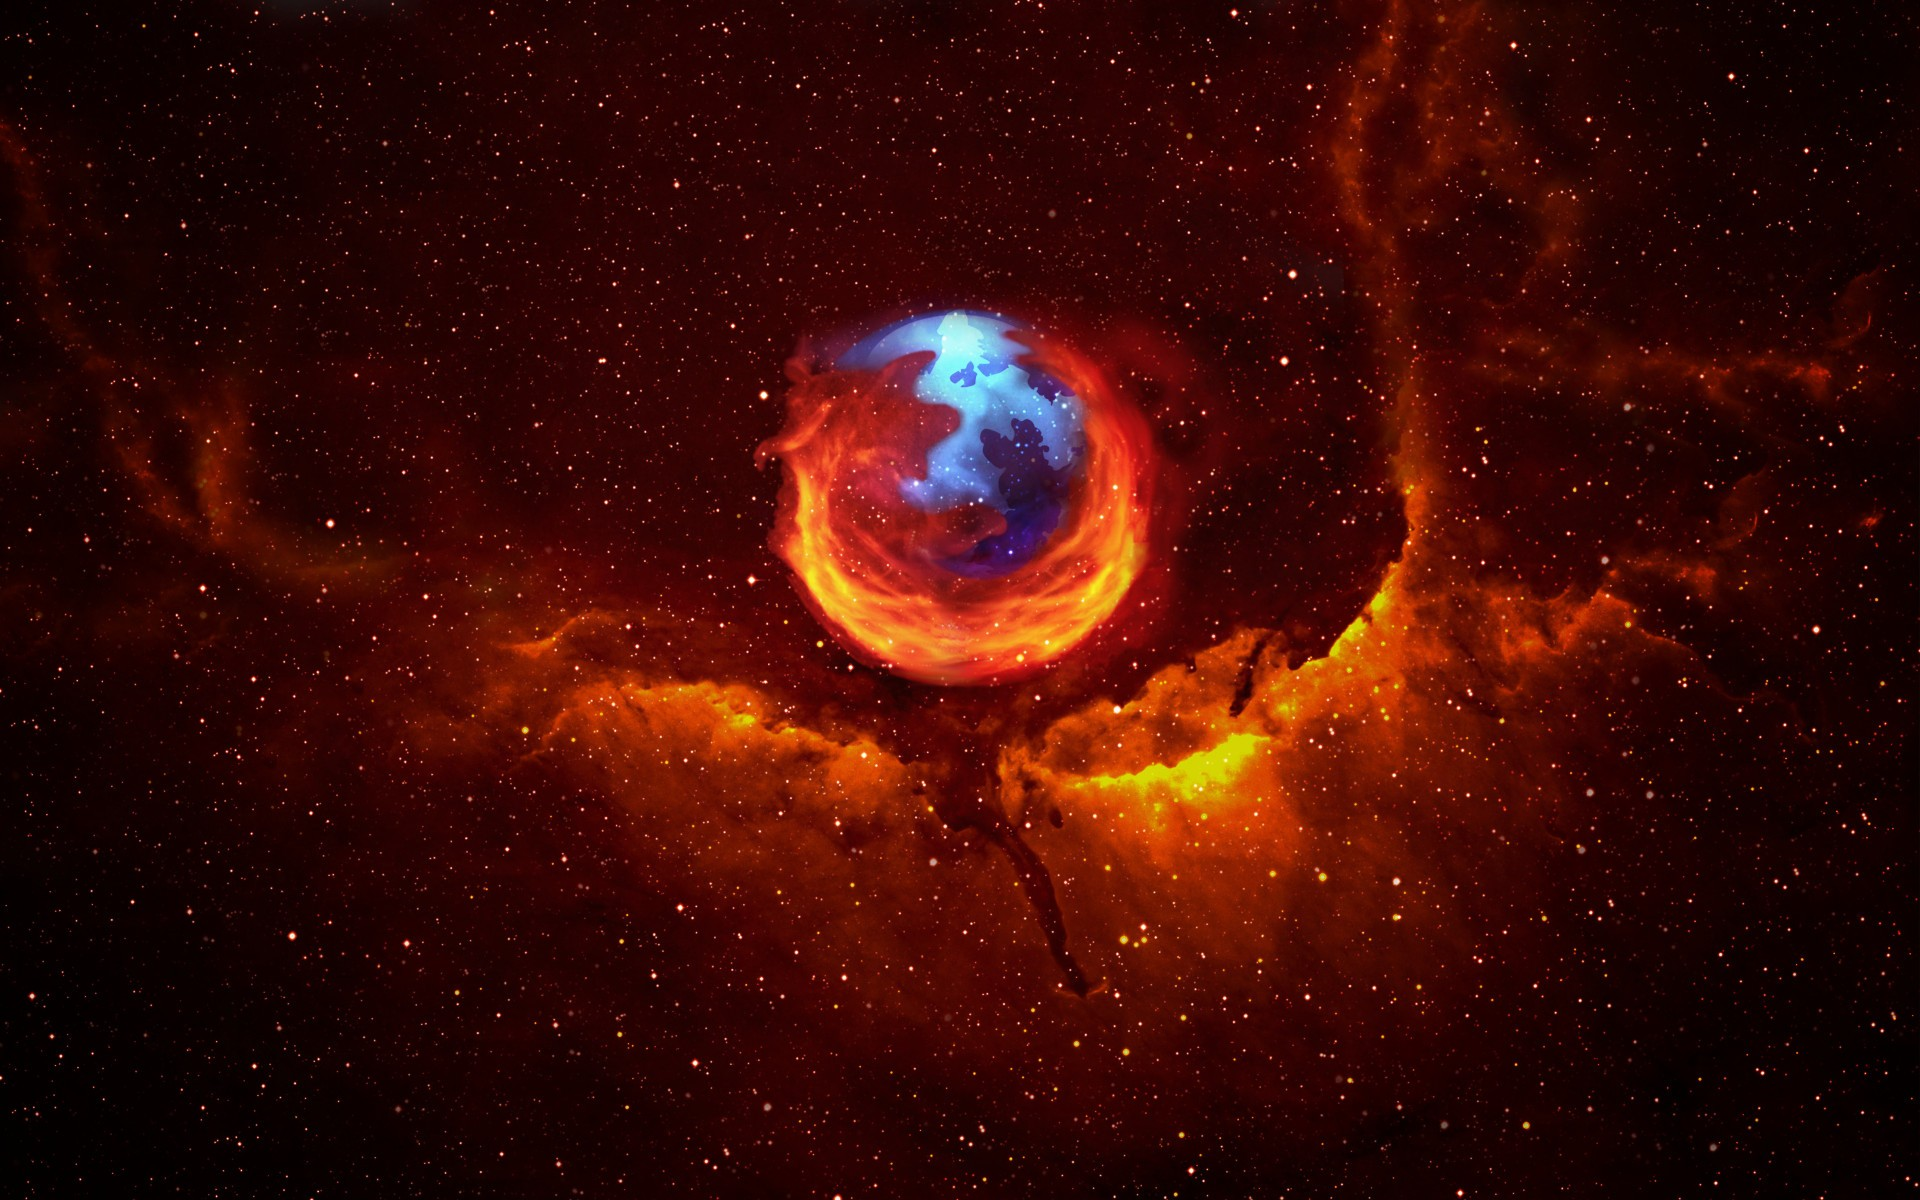 General 1920x1200 Mozilla Firefox space abstract Browser internet digital art